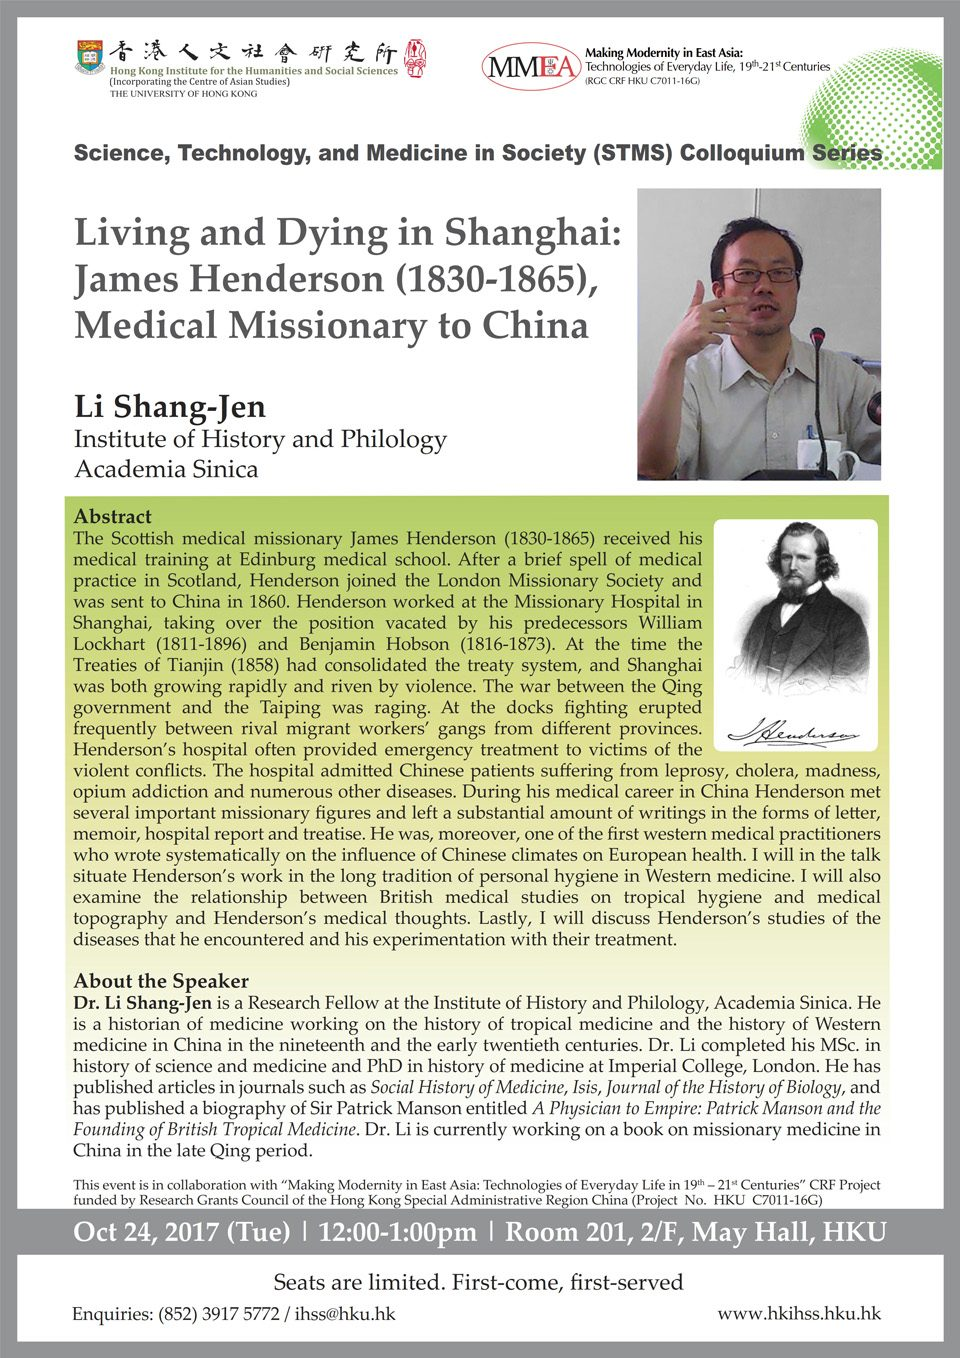 "Science, Technology, and Medicine in Society (STMS) Colloquium Series ""Living and Dying in Shanghai: James Henderson (1830-1865), Medical Missionary to China"" by Dr. Li Shang-Jen (October 24, 2017)"